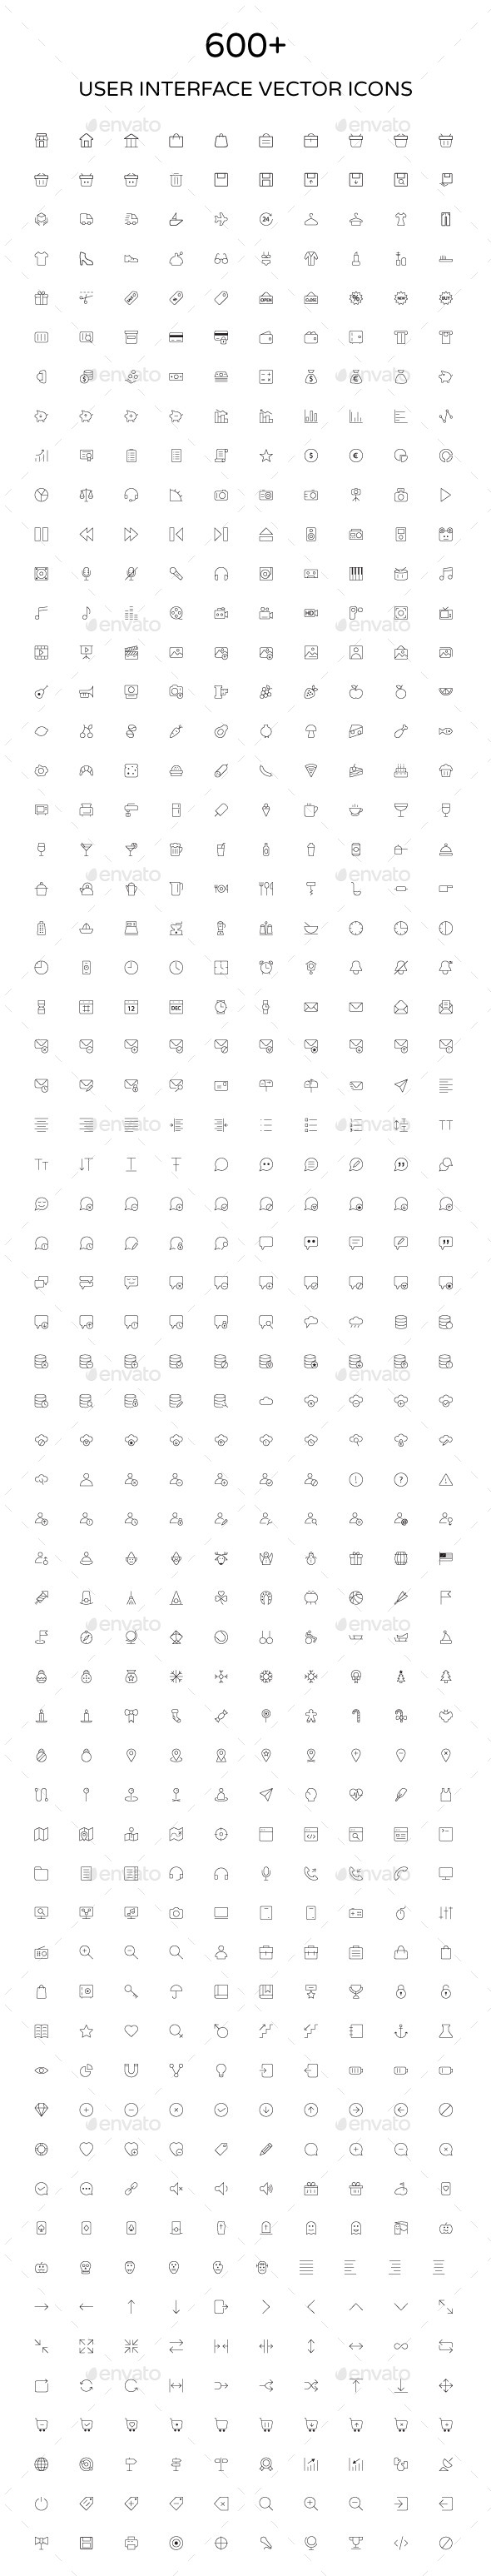 User Interface Outline Vector Icons - Web Icons